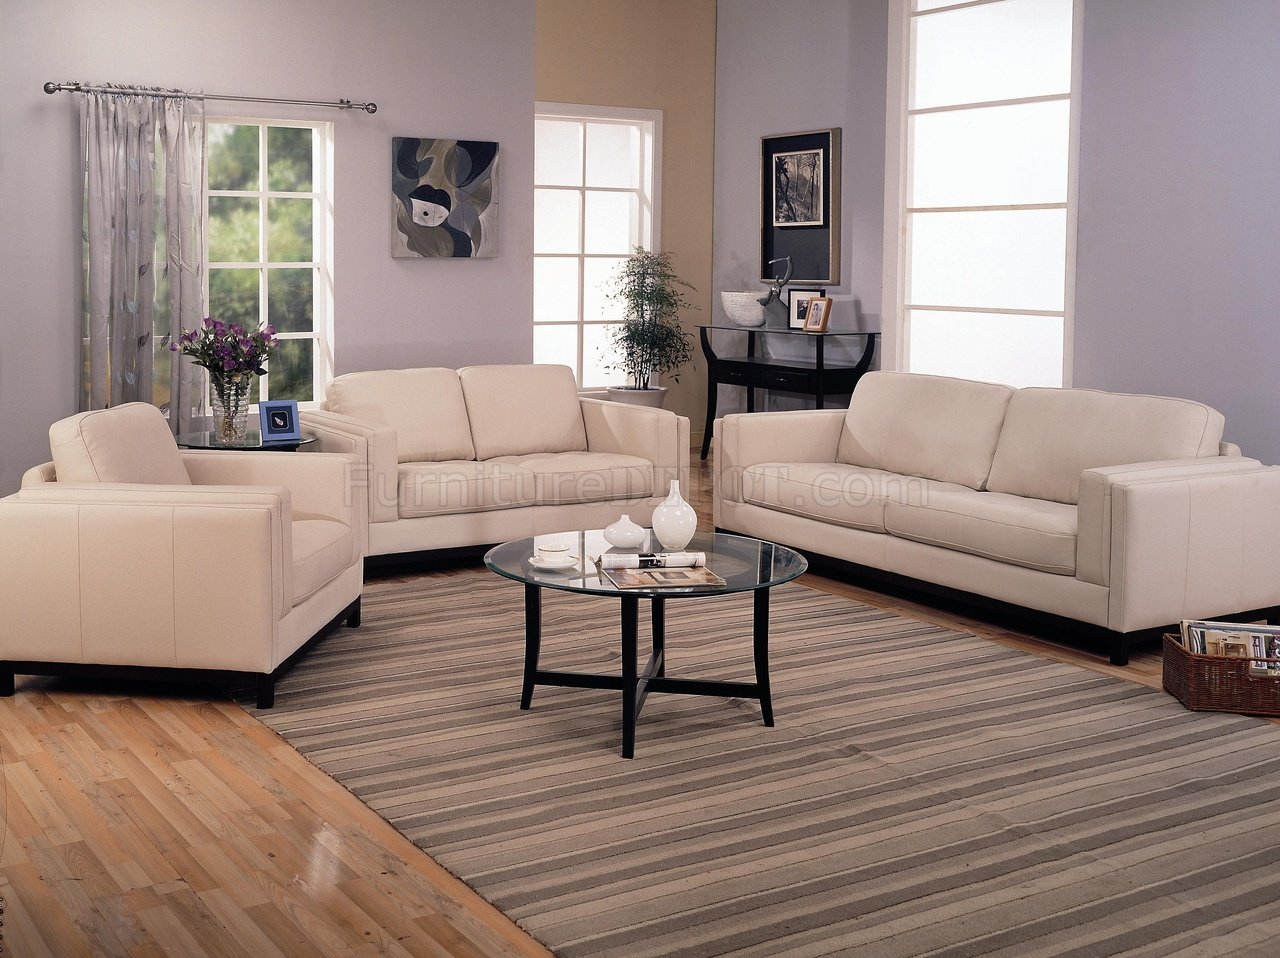 contemporary living room couches. Cream Leather Contemporary Living Room Sofa W/Options Contemporary Living Room Couches A